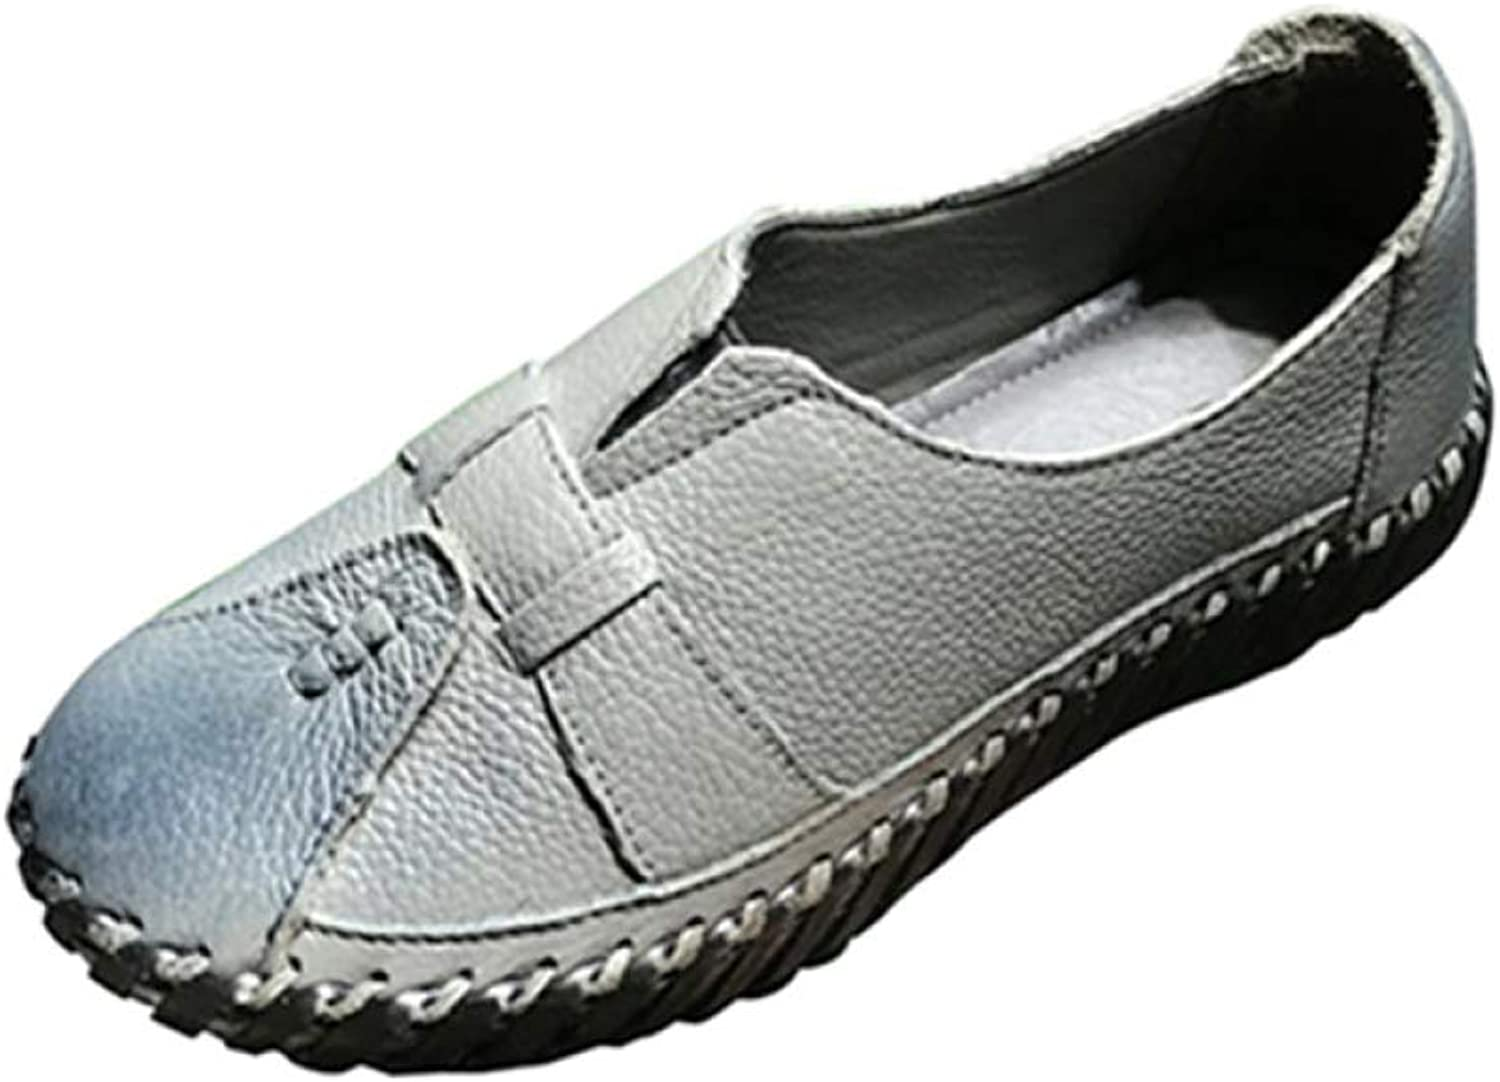 Fay Waters Women's Comfort Flat Moccasins Round Toe Slip On Casual Walking Driving Loafer shoes